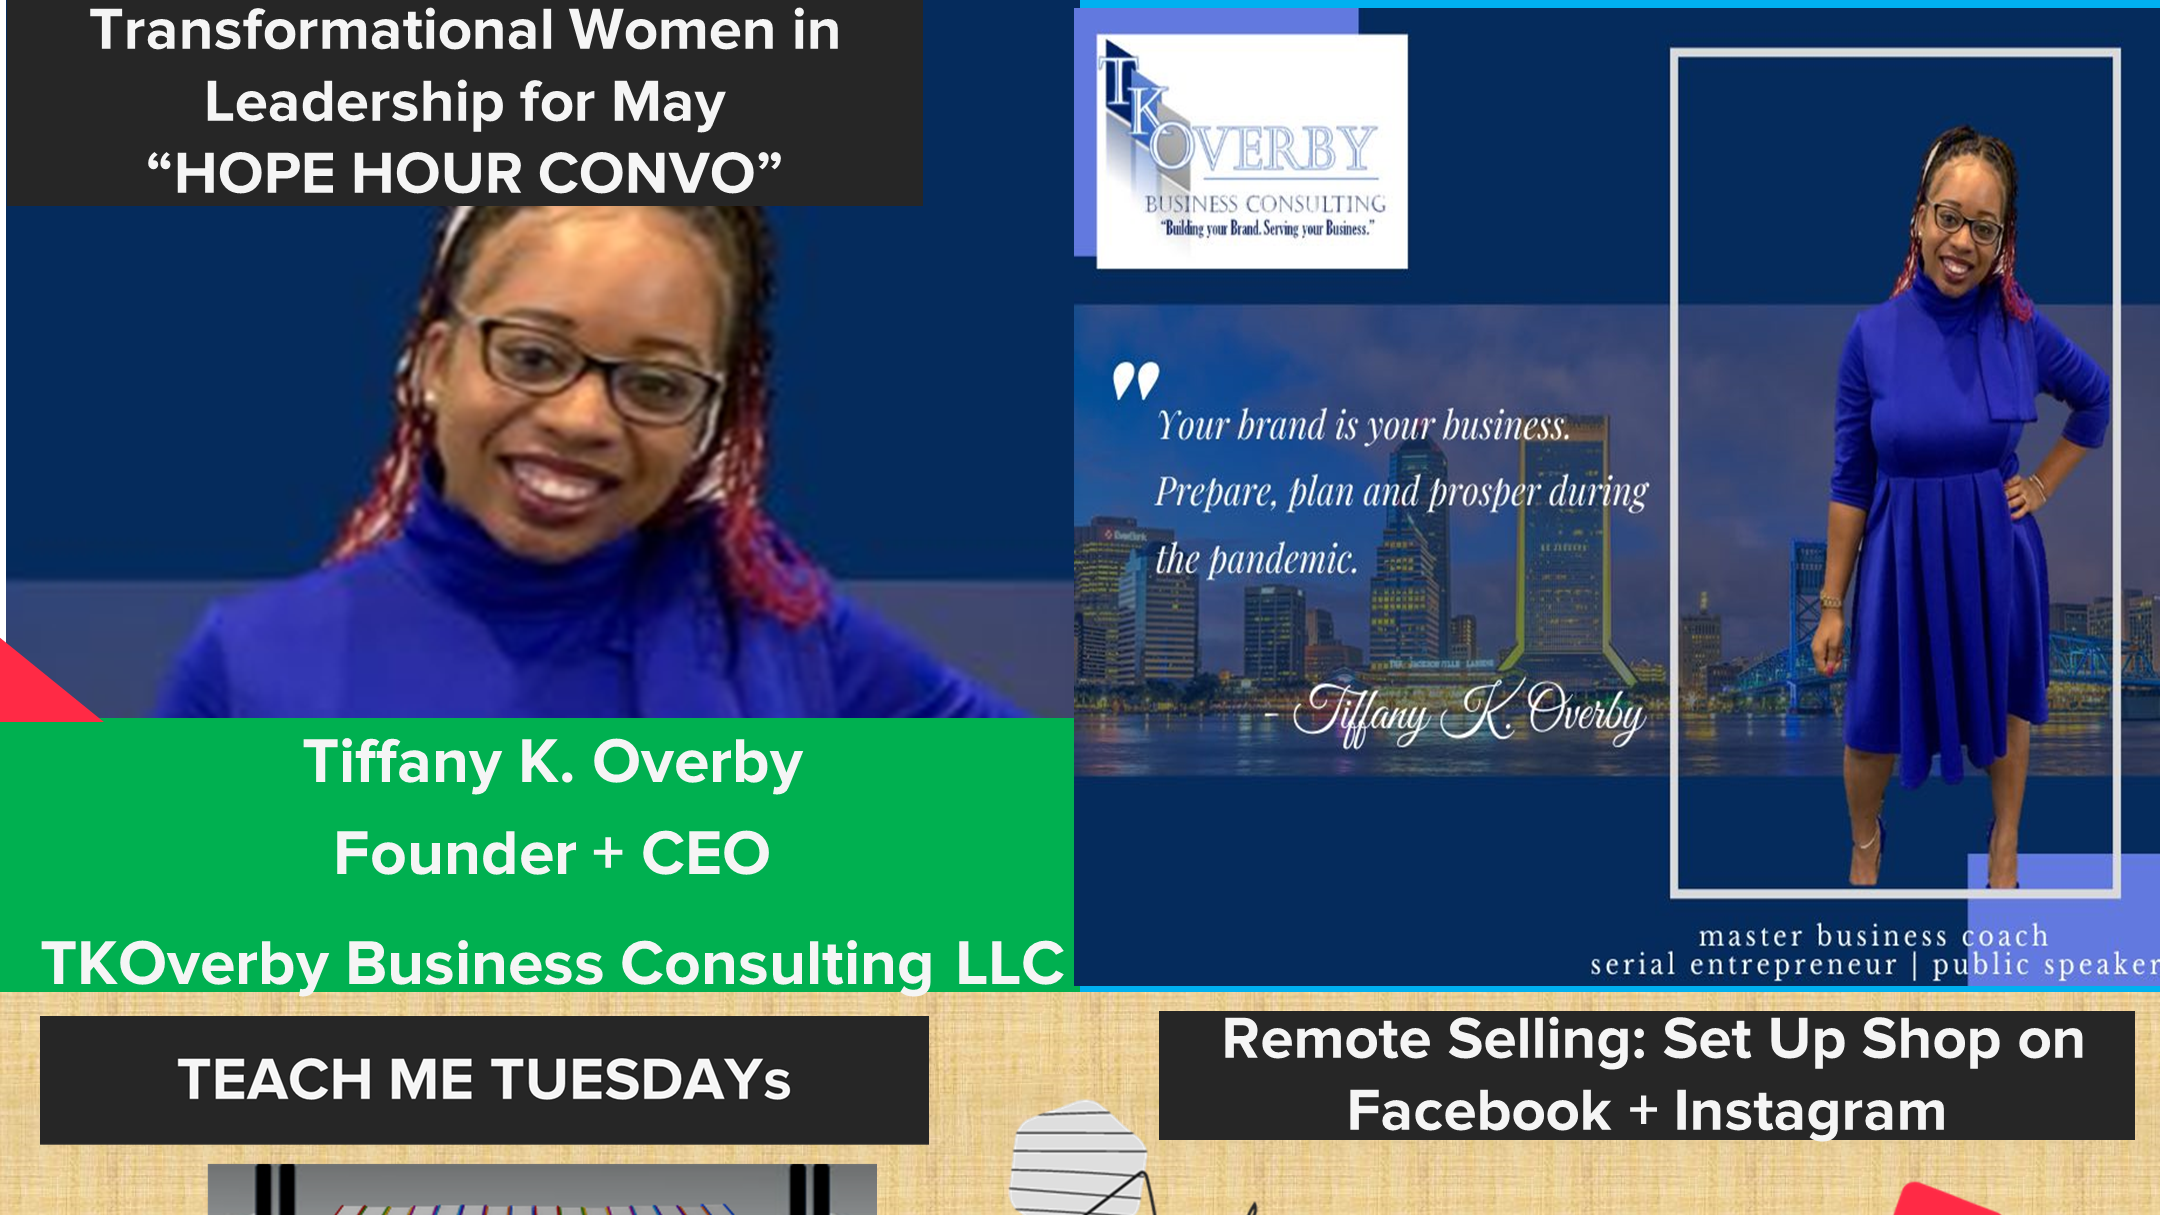 Photo forThe Business Talking Library Teach Me Tuesdays with Tiffany K Overby on ViewStub